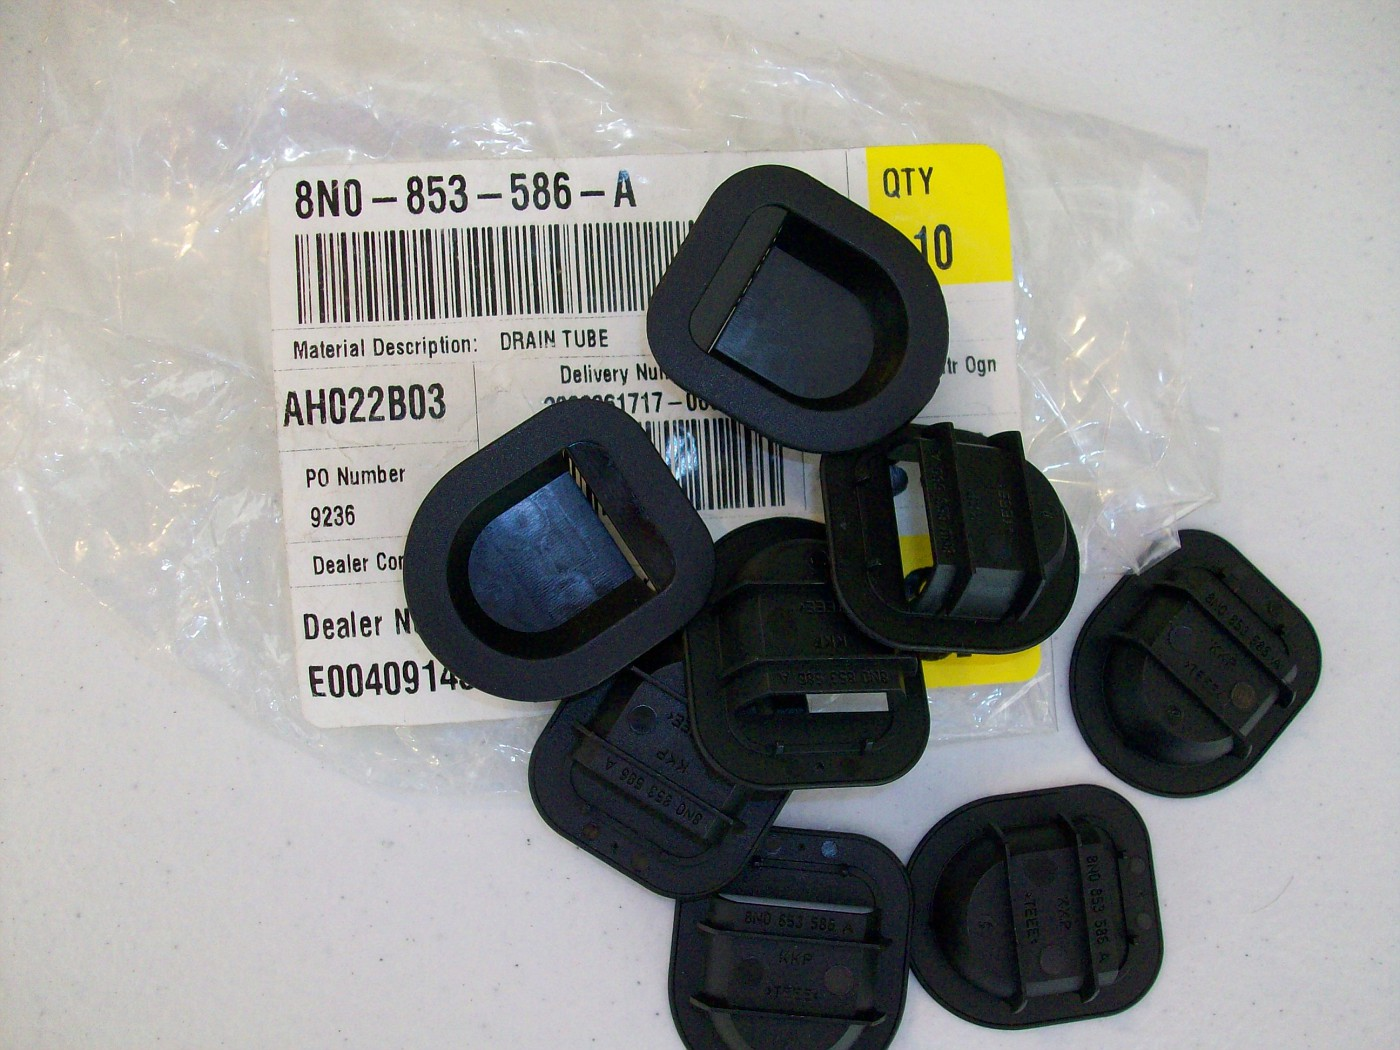 SOLD $10 Plastic Covers for drain holes for under car - Part # 8N0853586A - Qty. 8